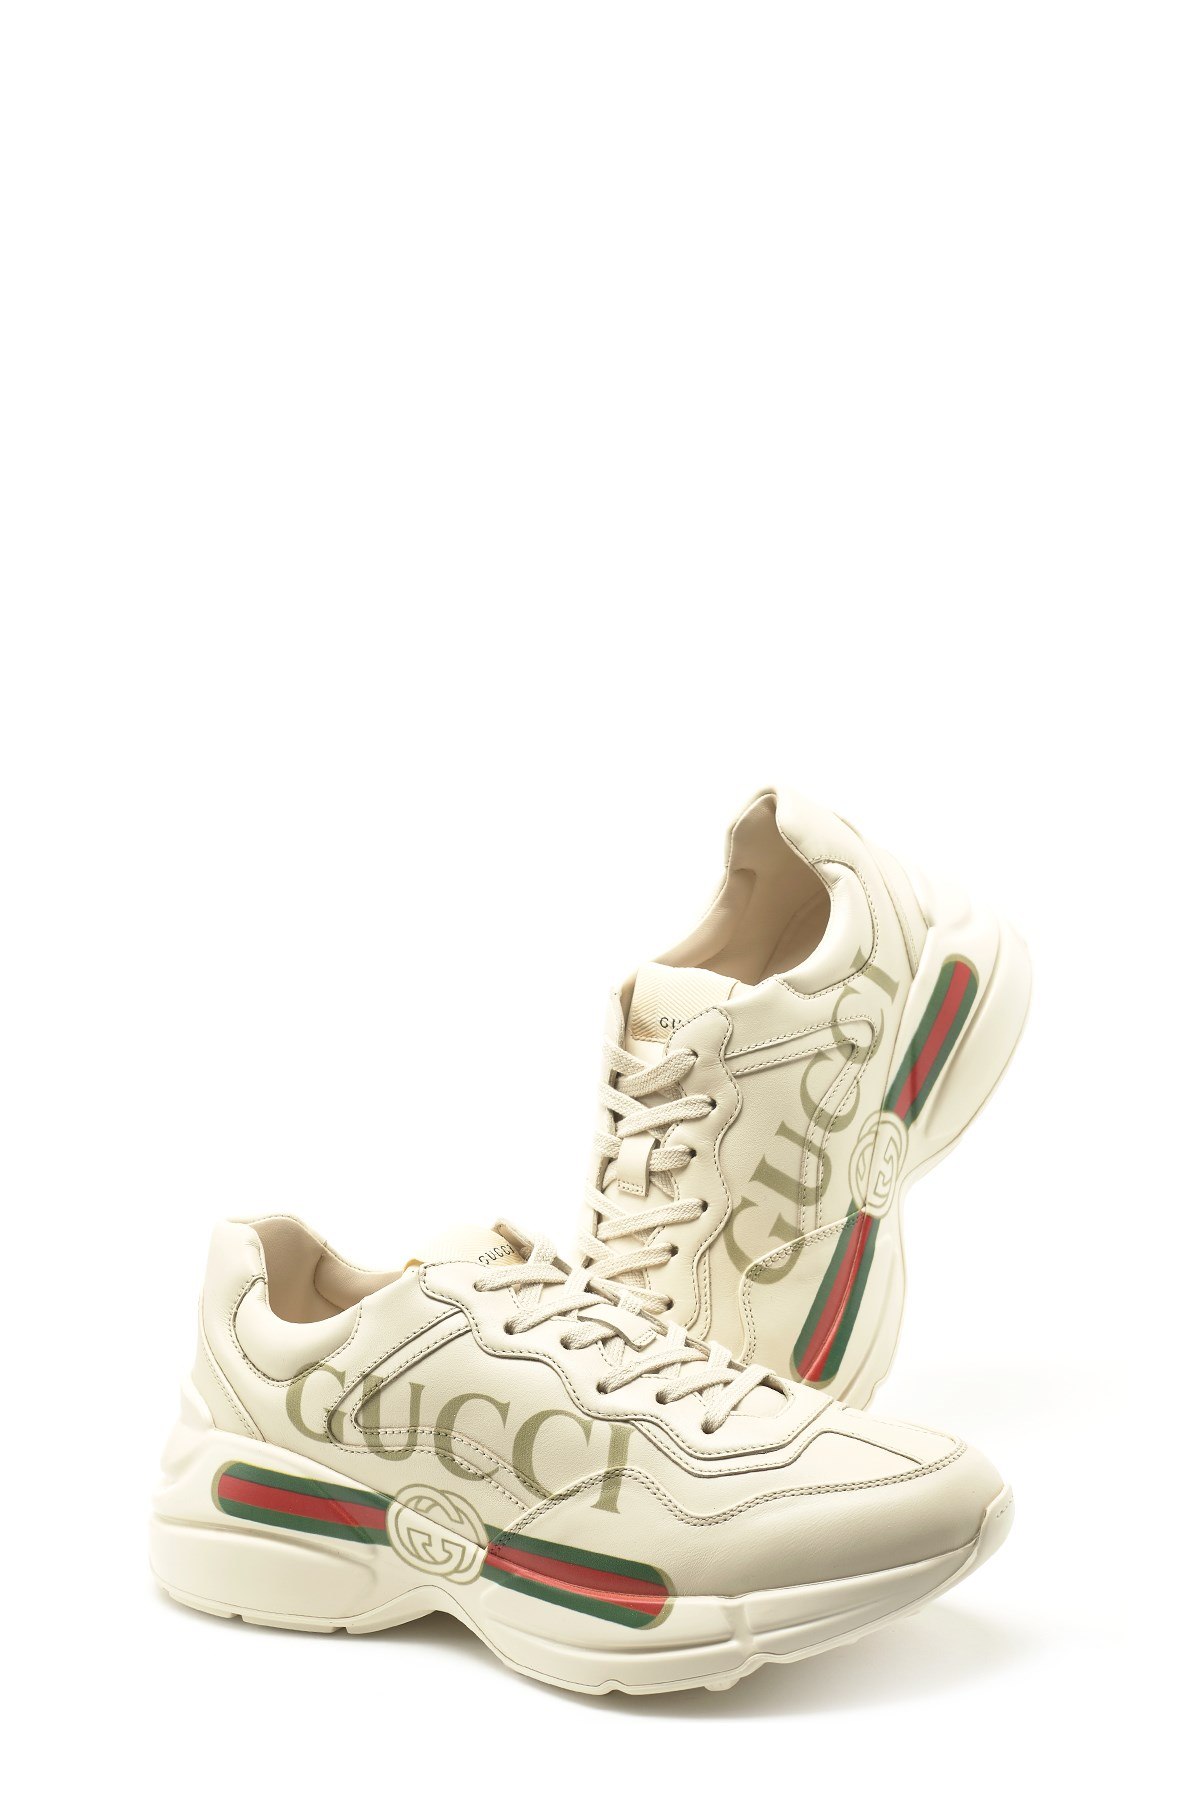 eaa24427d2b30 gucci  rhyton  sneakers available on julian-fashion.com - 62693